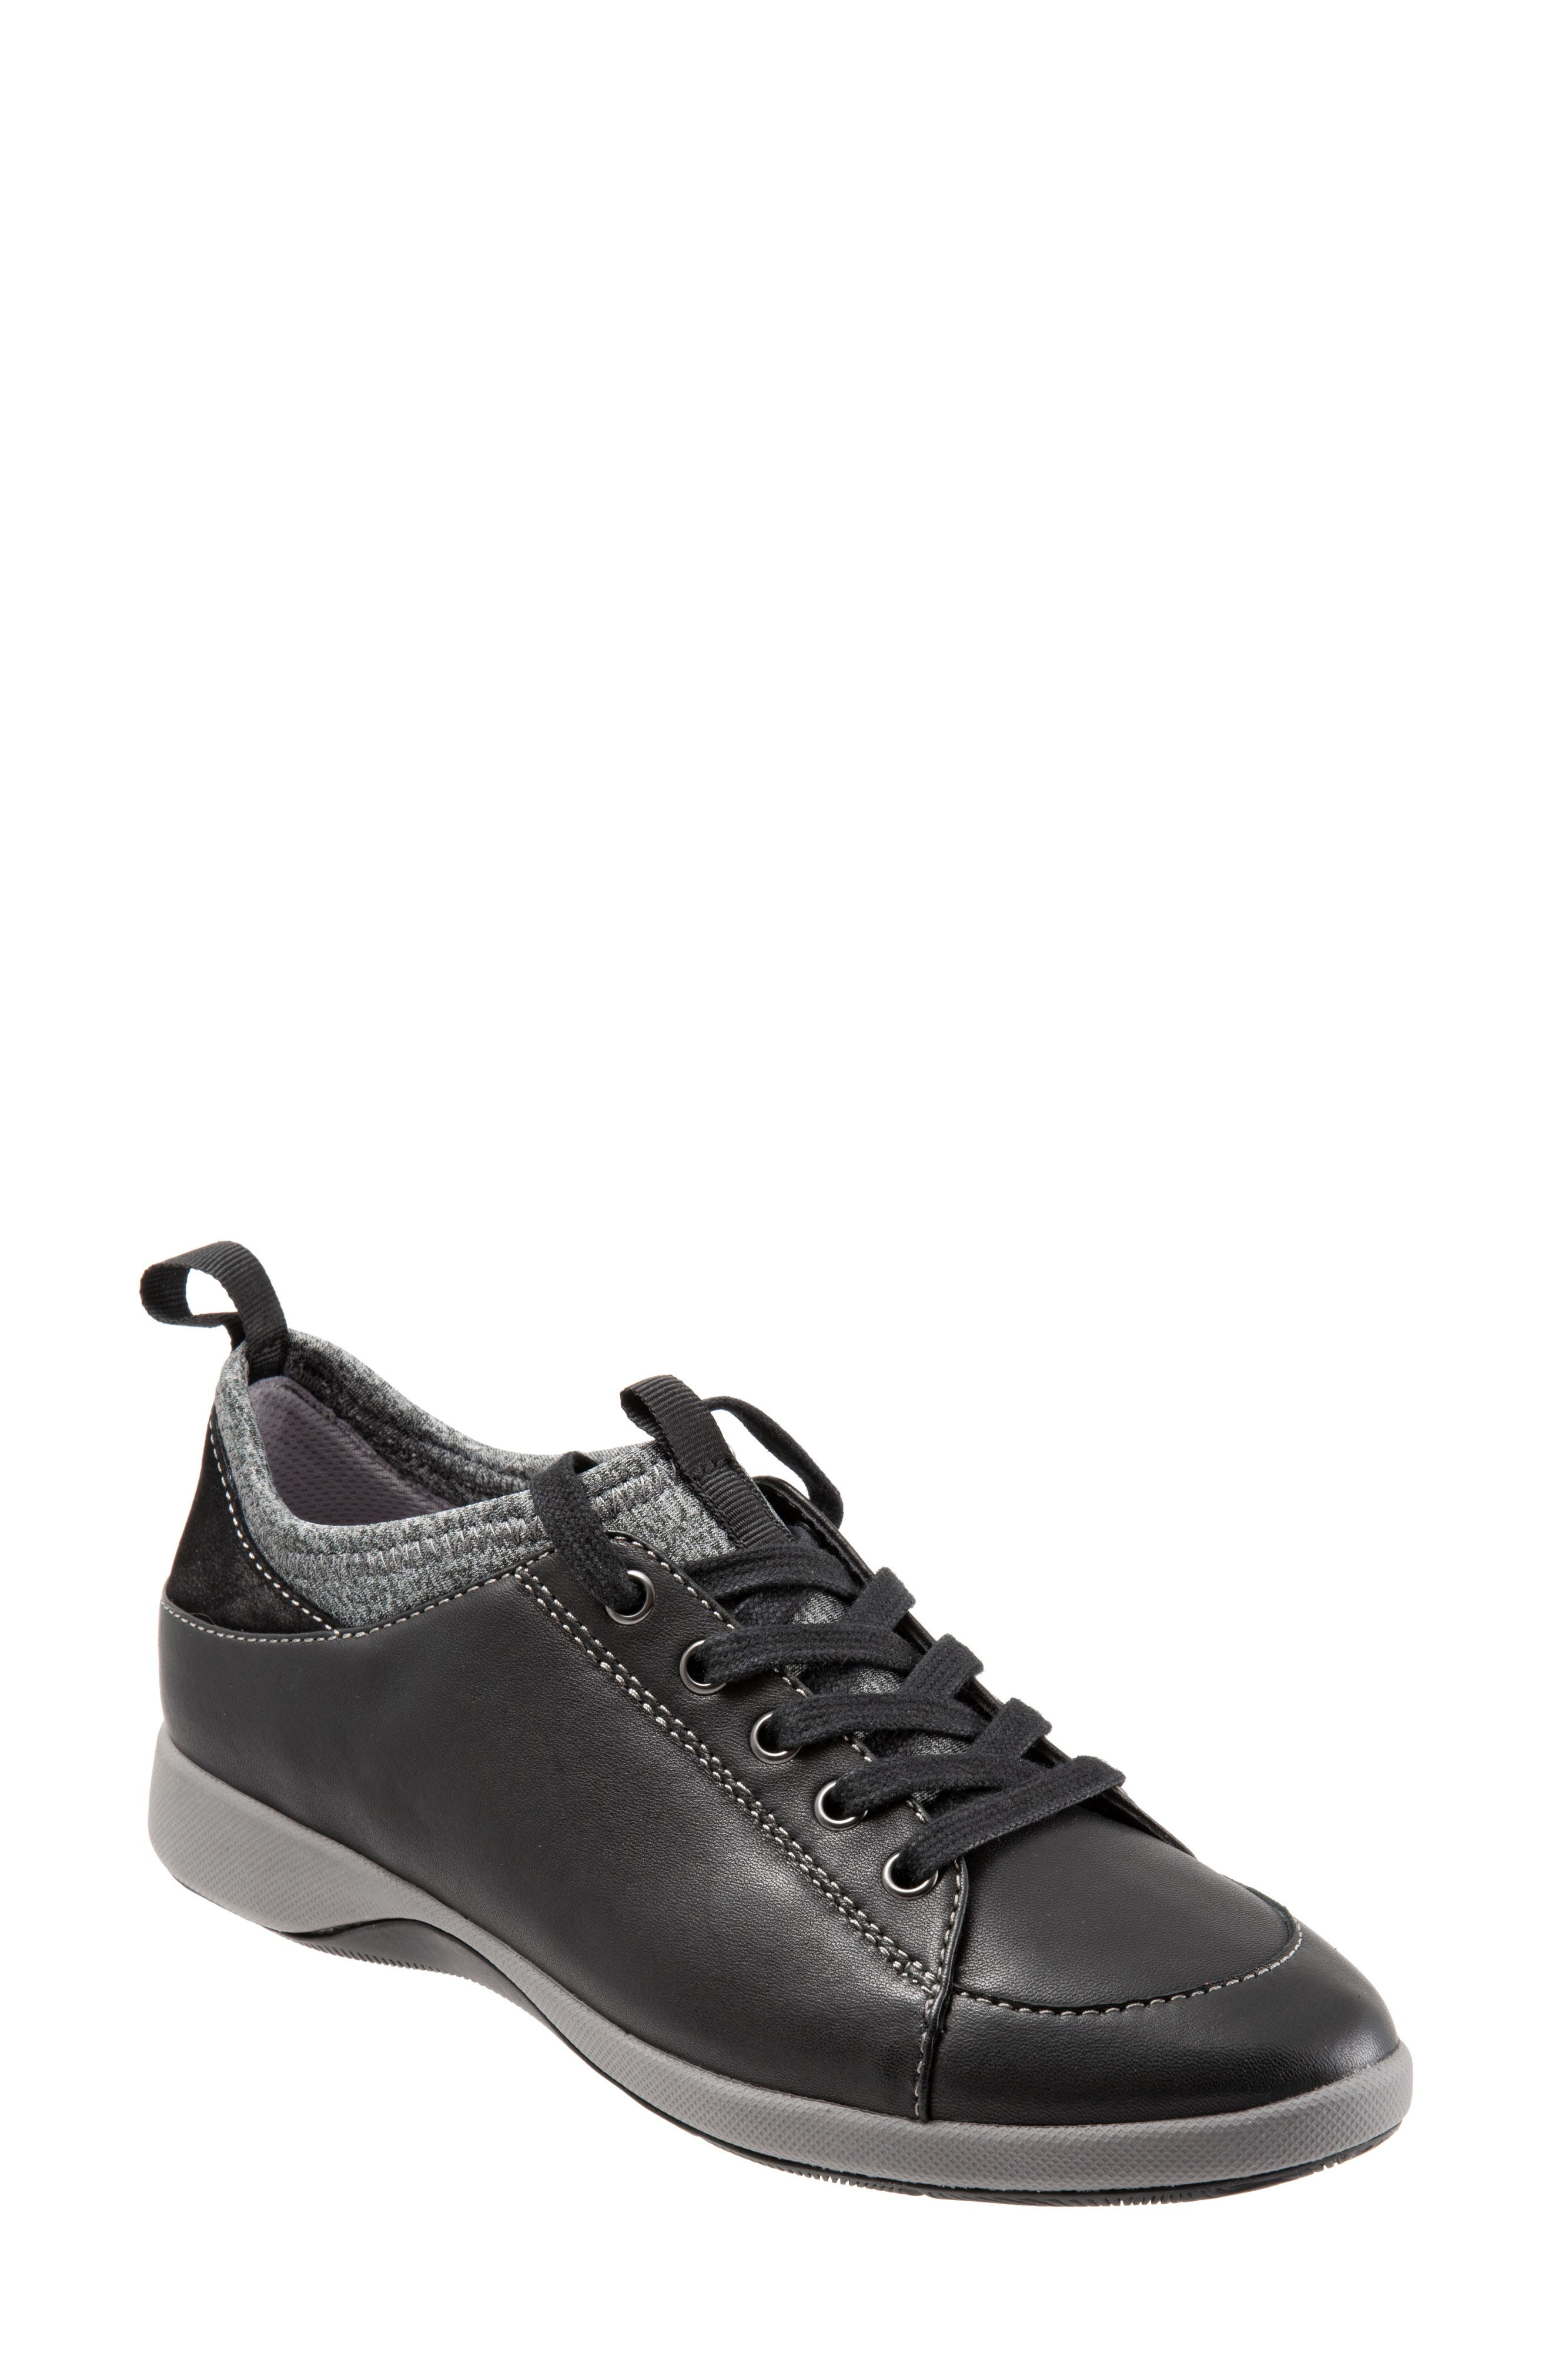 SAVA Haven Sneaker,                         Main,                         color, BLACK/ GREY LEATHER